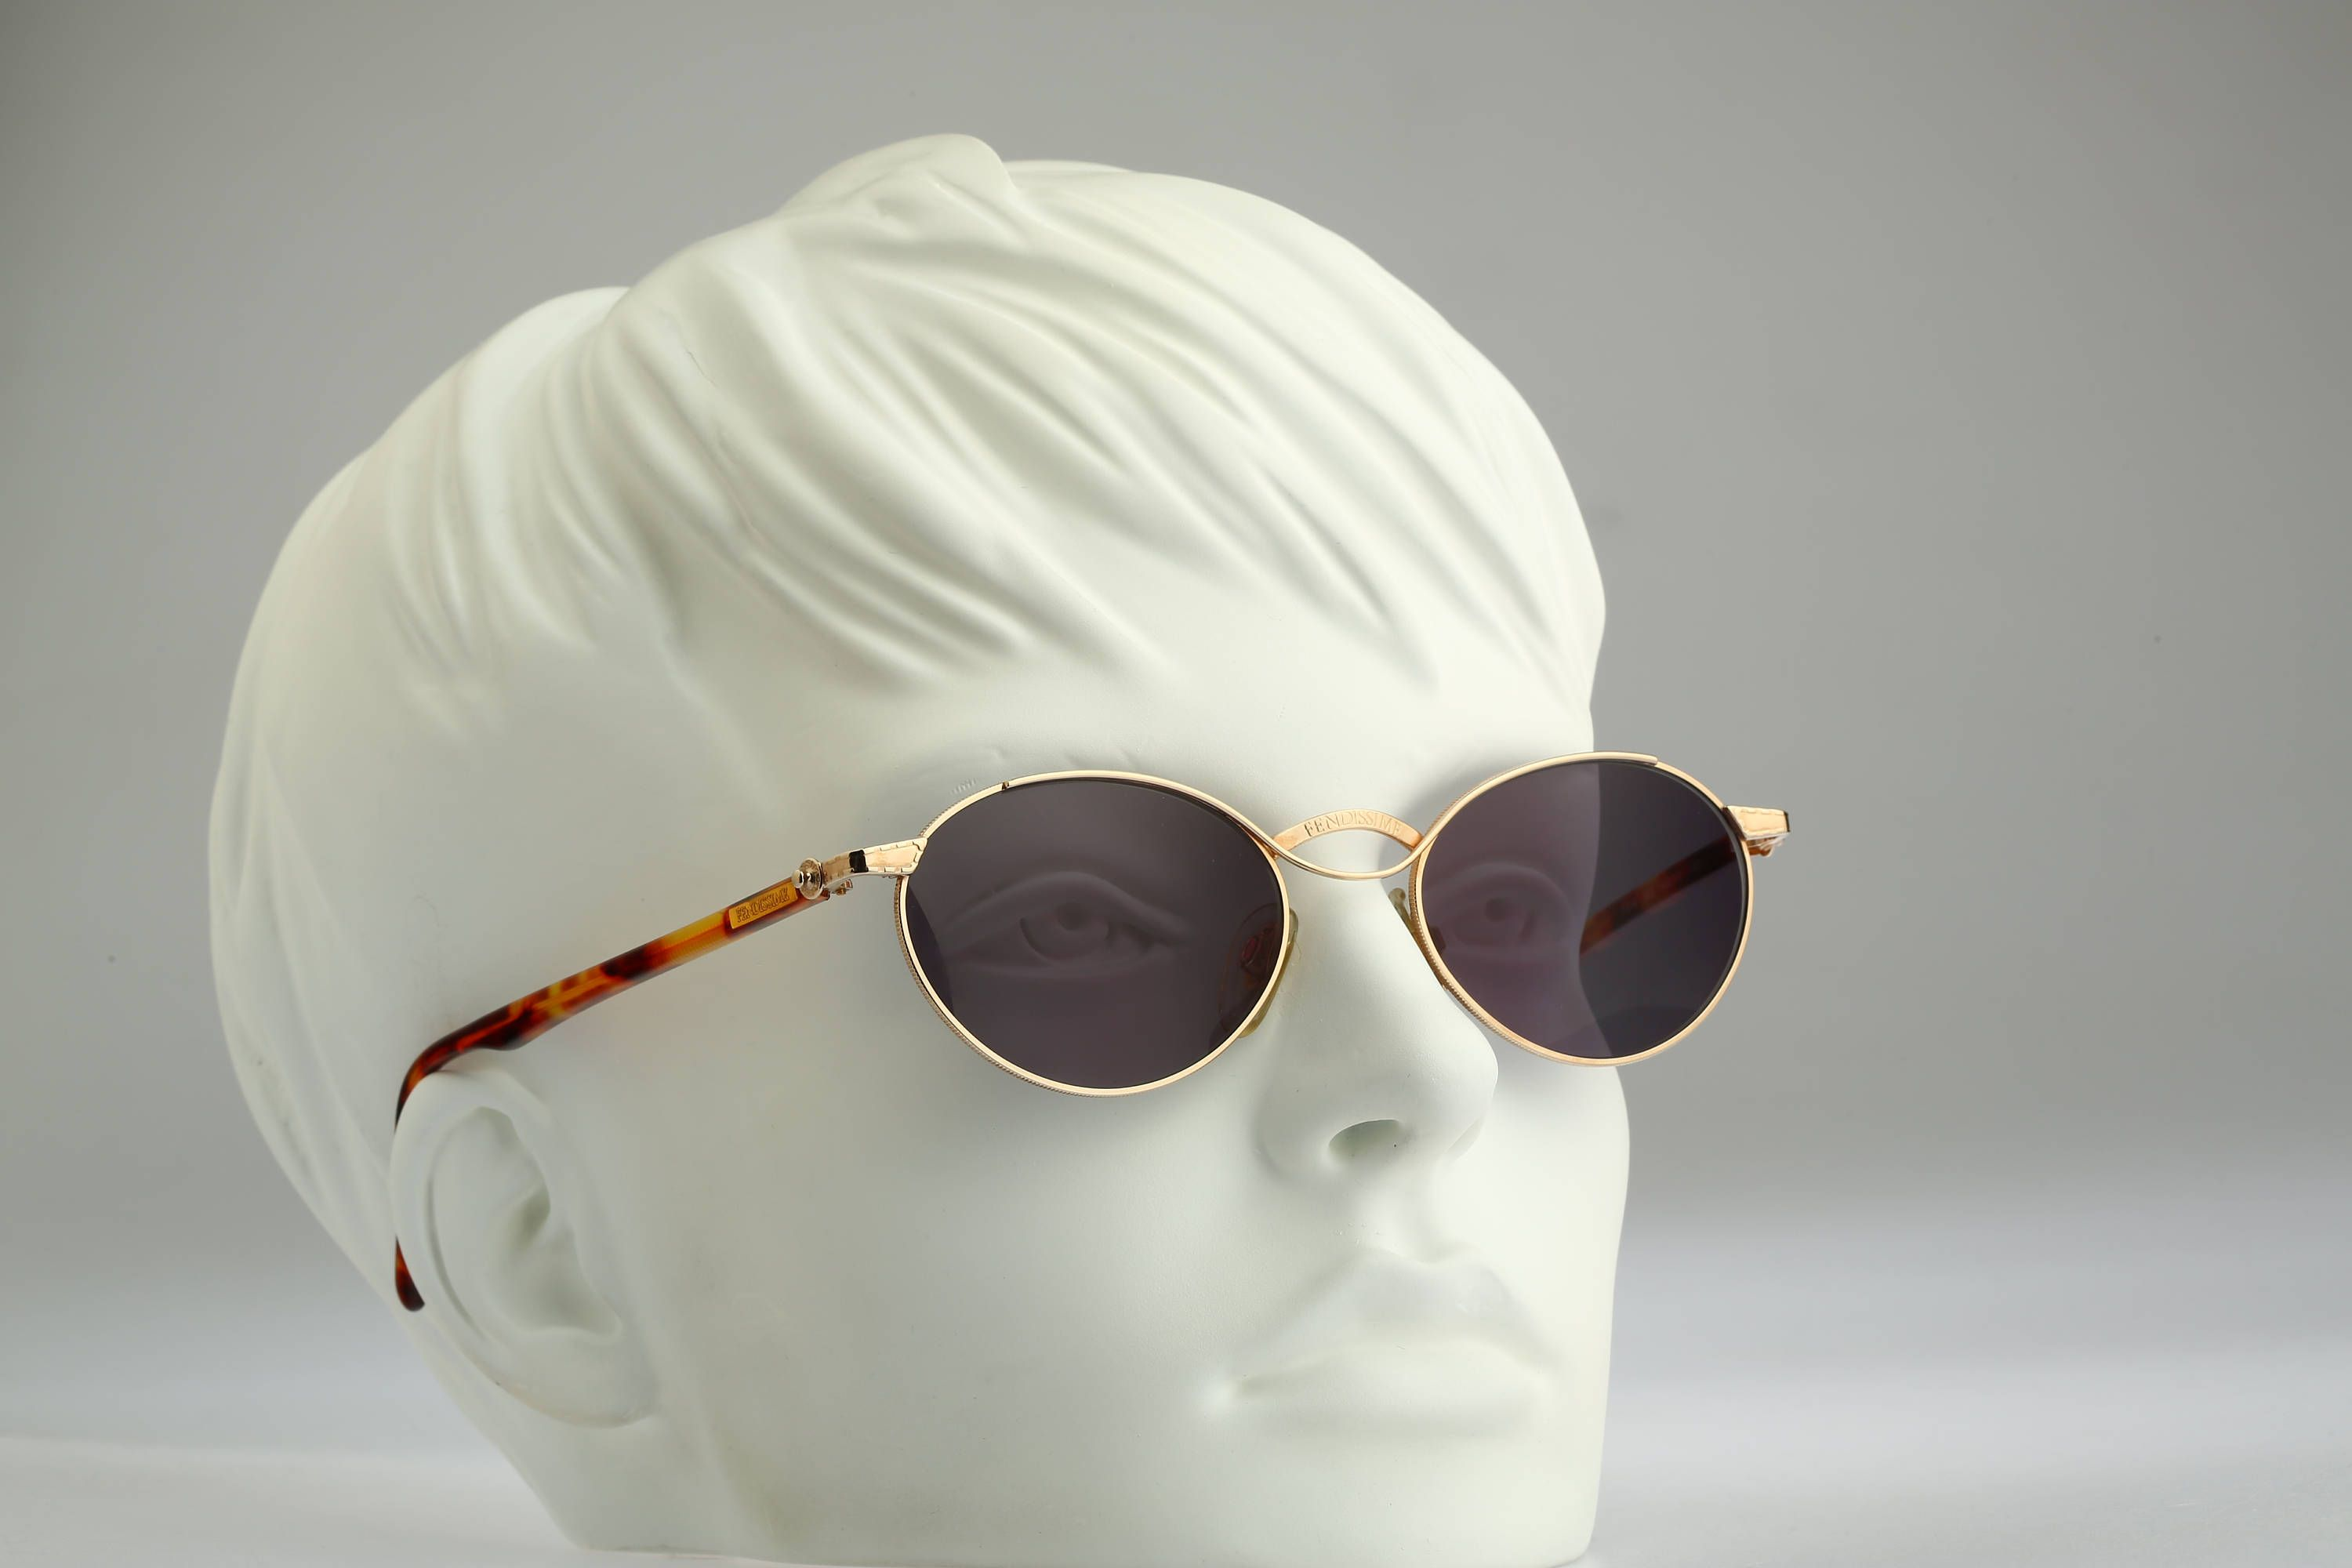 904136fbb4e Fendissime F014 906   Vintage sunglasses   NOS   90s rare and unique by  CarettaVintage on